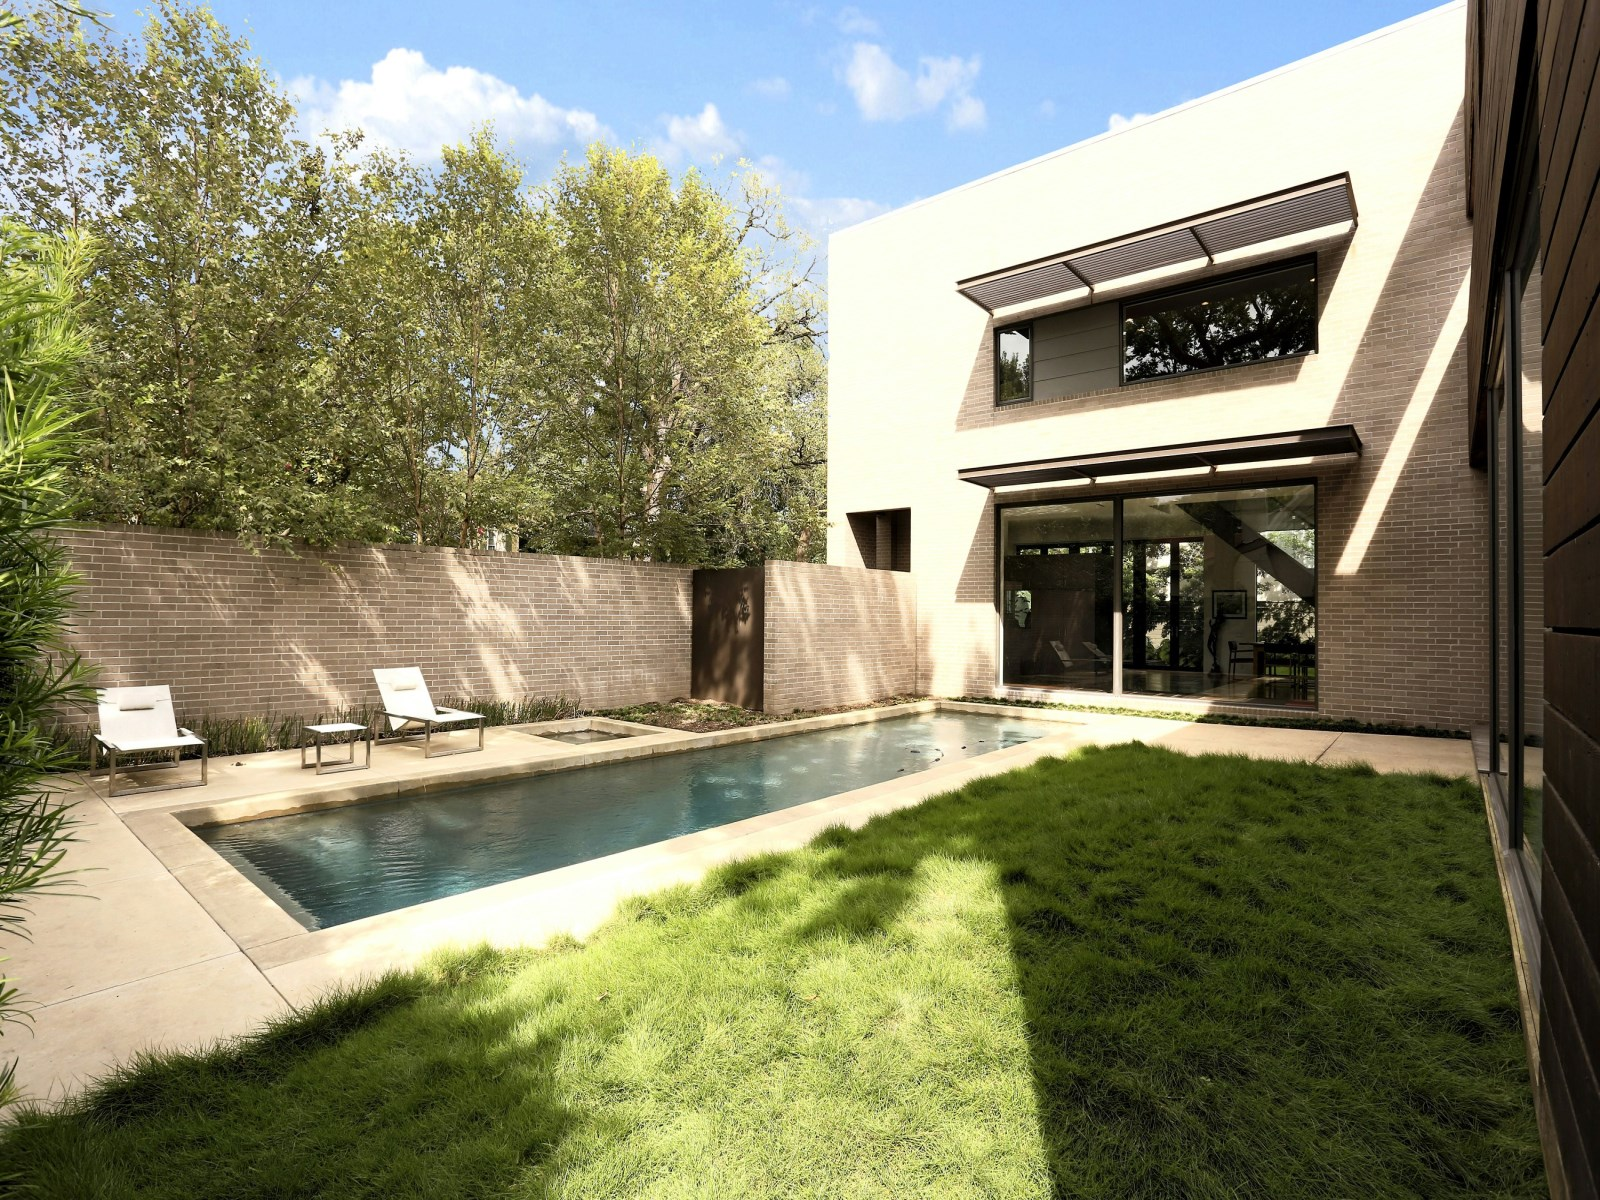 Backyard Pool Inspiration - A home with formidable architecture and a light interior